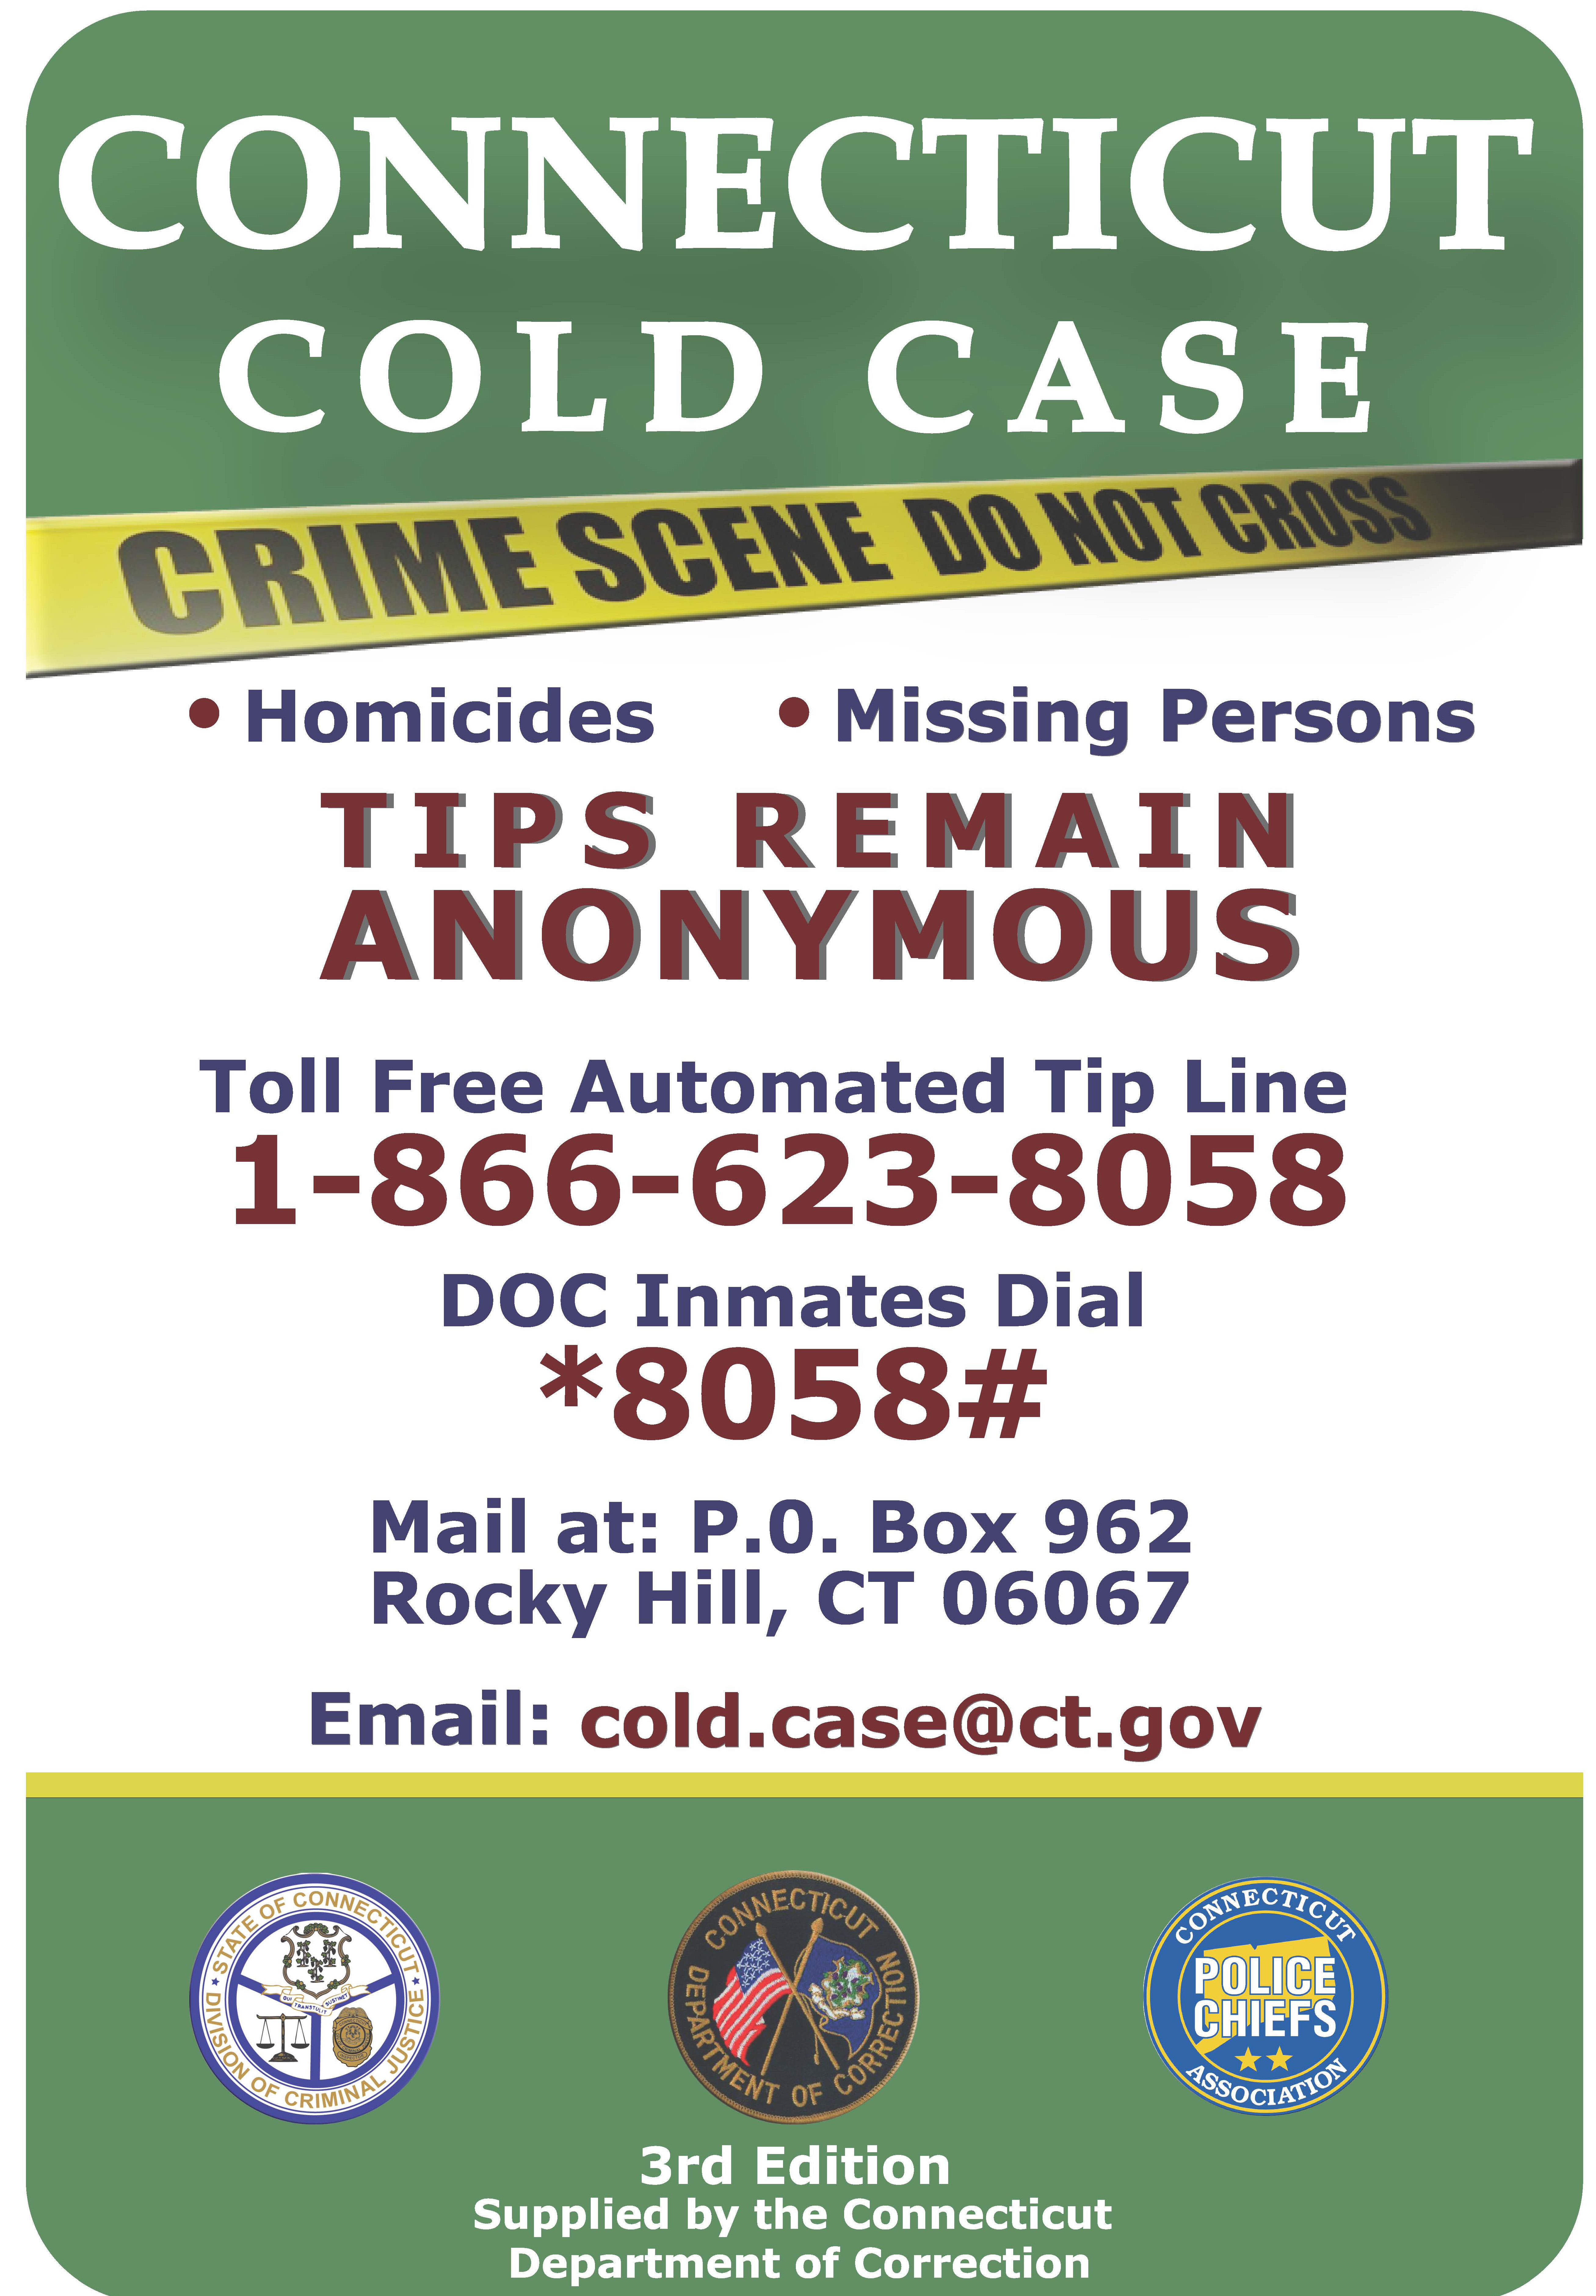 Follow this link to see the third edition of Cold Case Playing Cards.